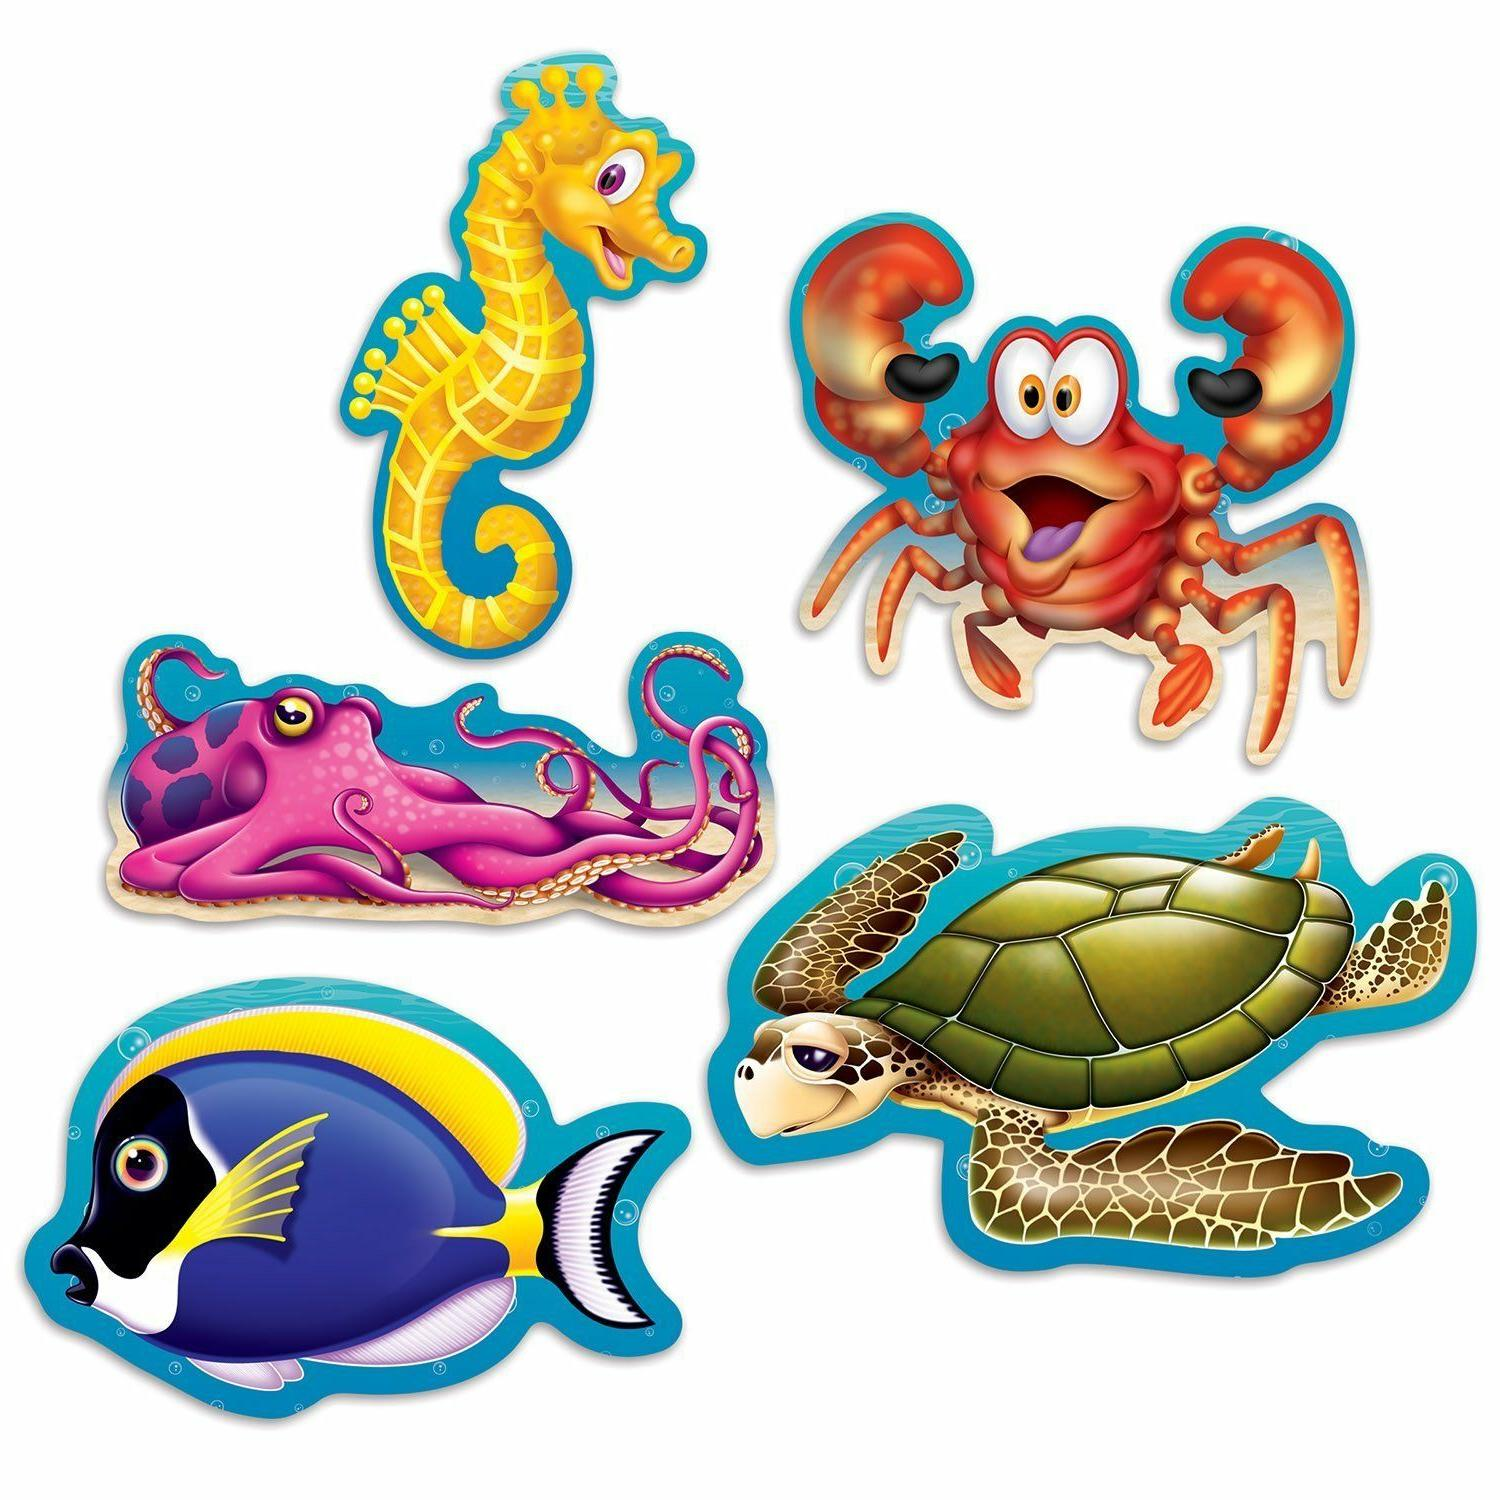 10 UNDER THE SEA Ocean Beistle Party Decorations Mini SEA CR